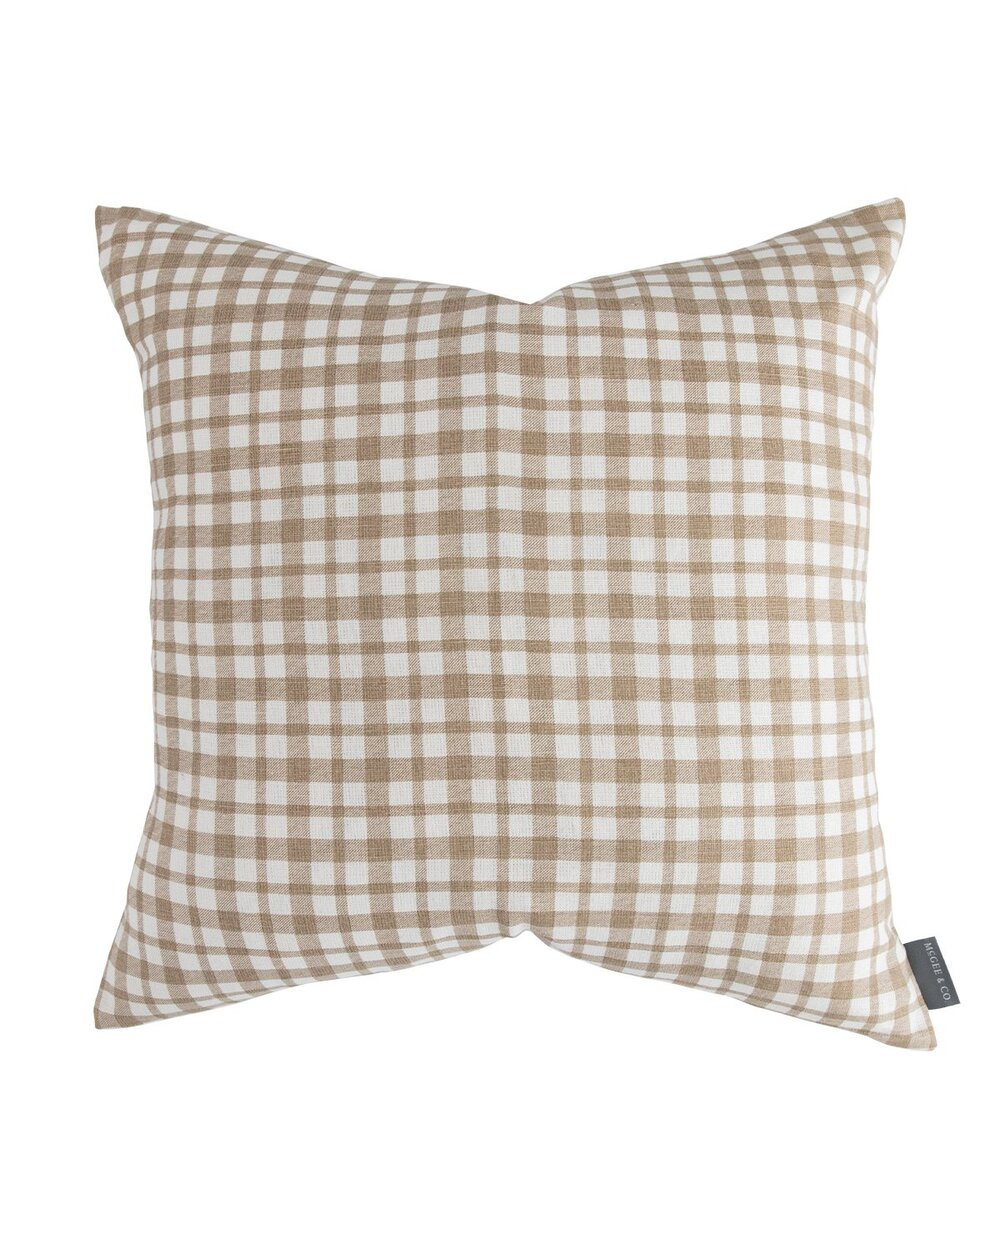 Edison_Gingham_Pillow_Cover_1_1.jpg